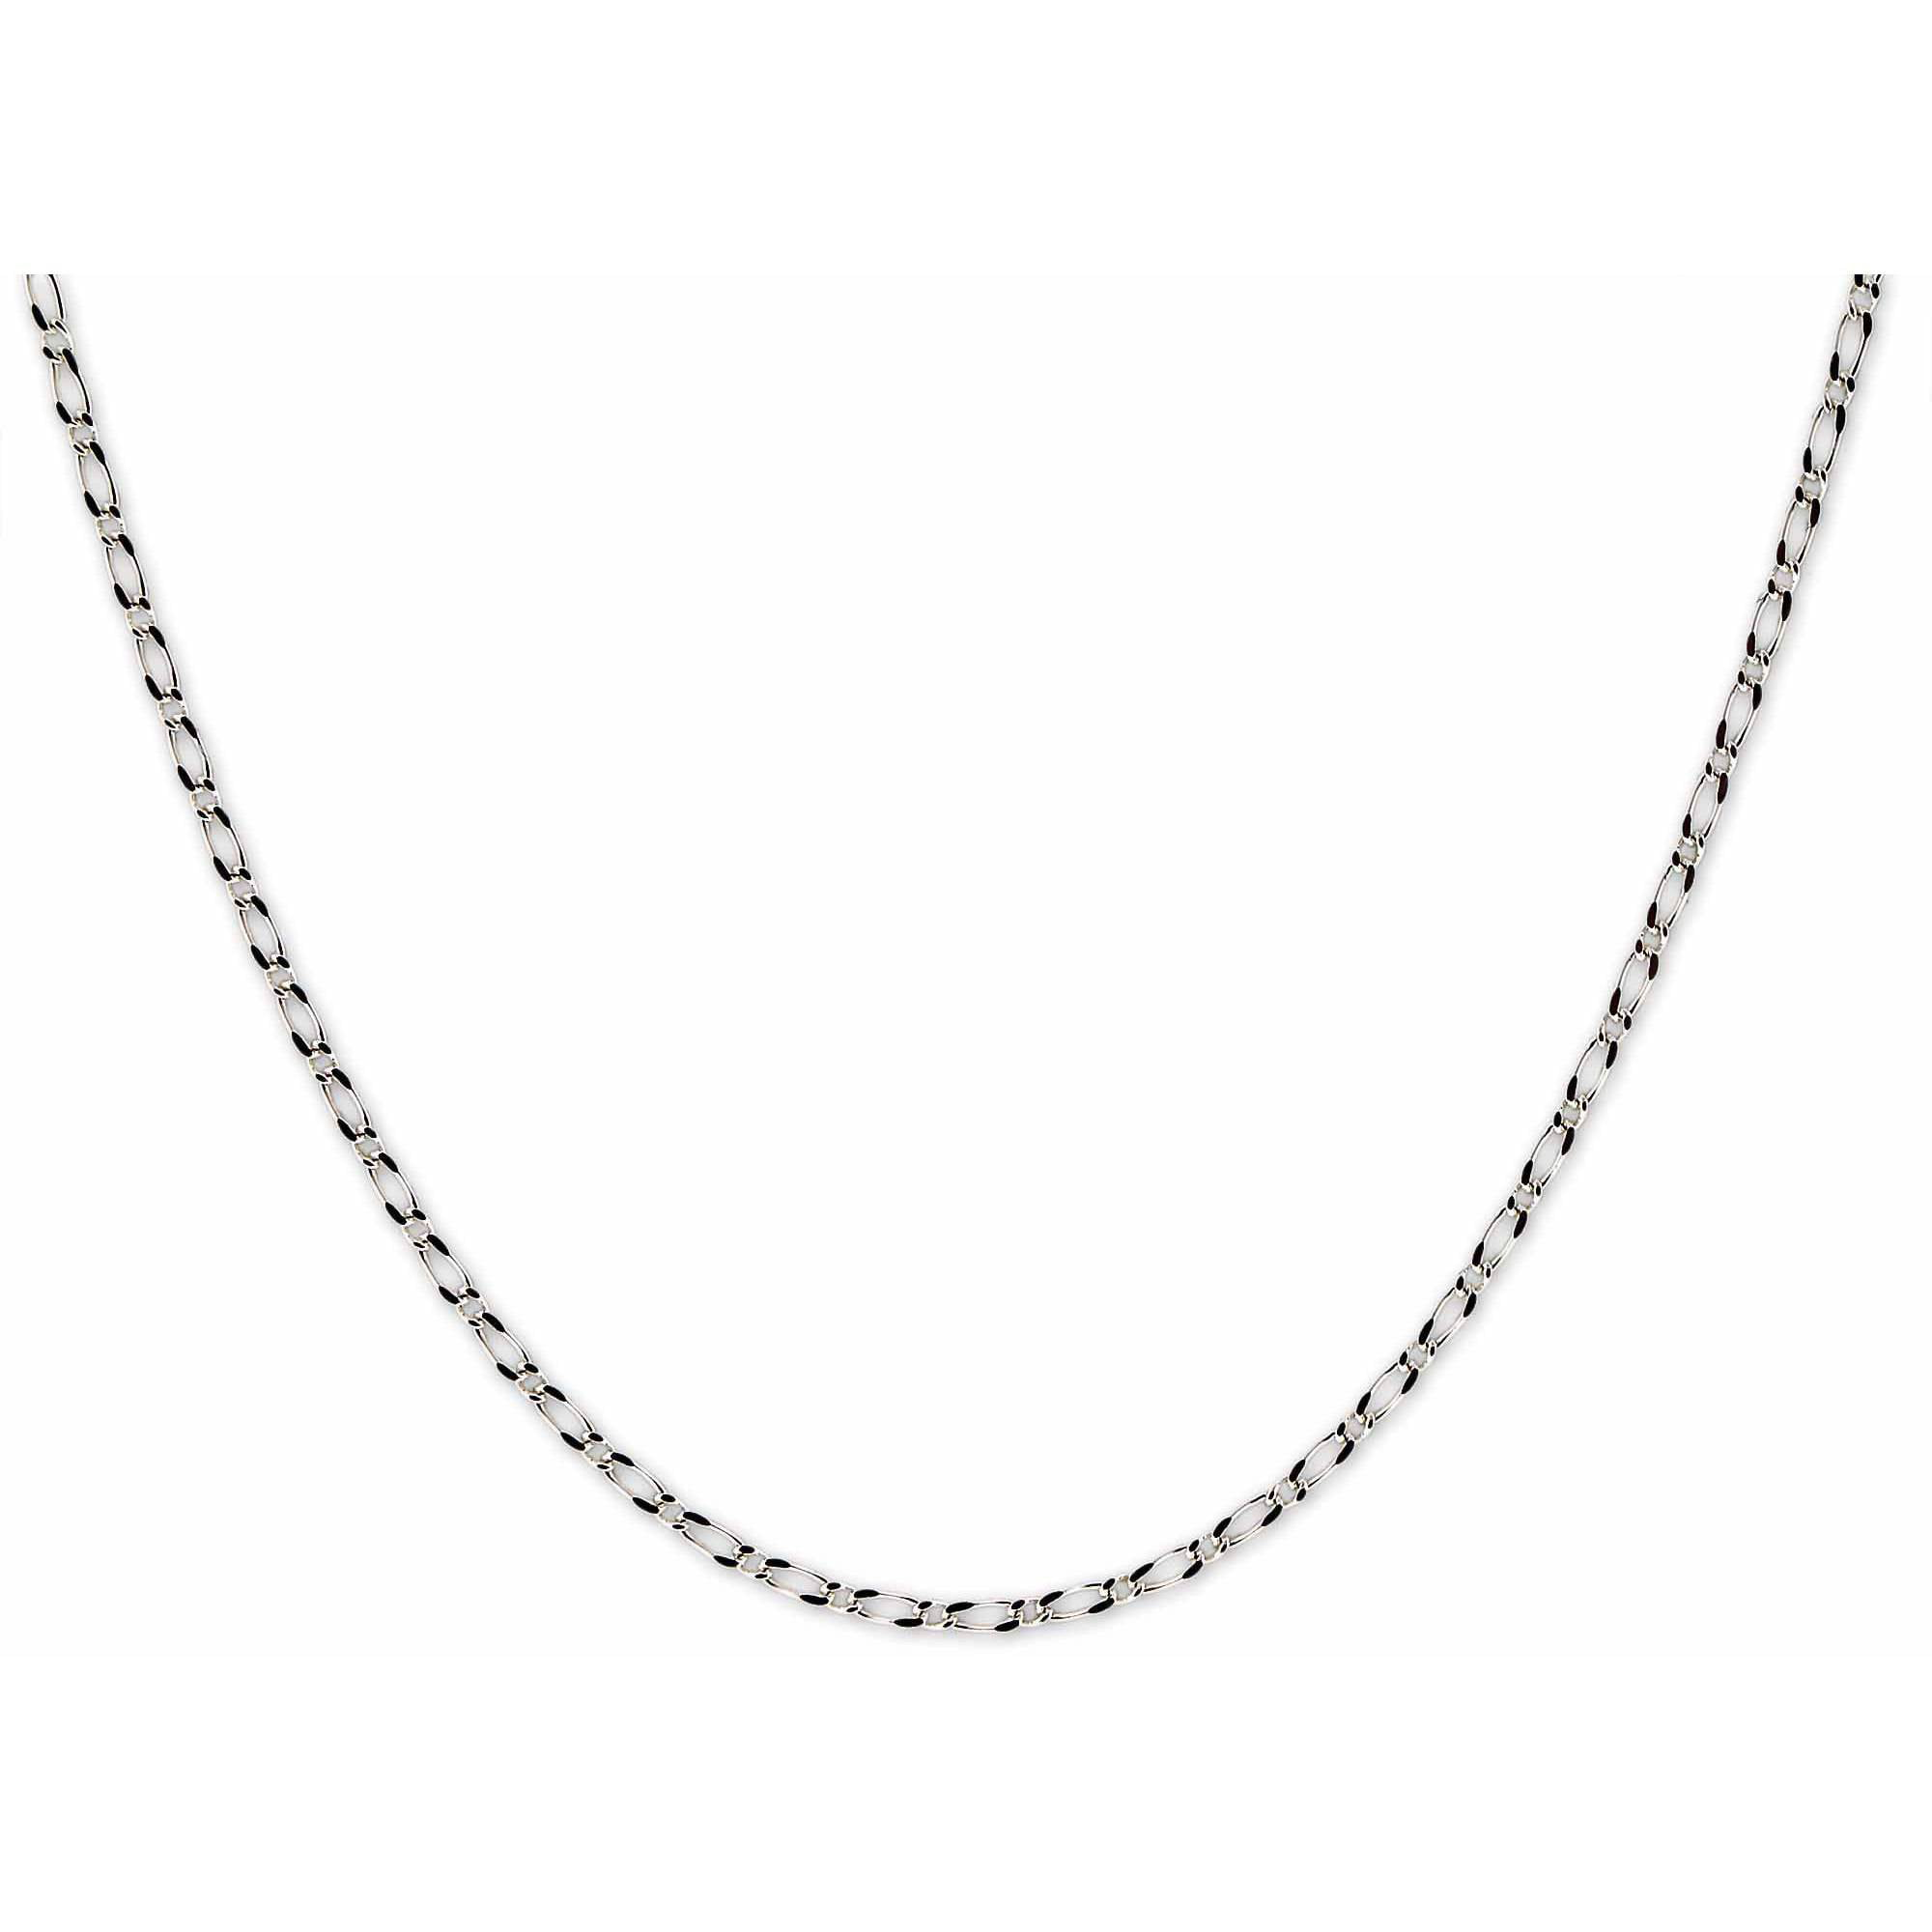 anklet br sterling anklets chain eternity jewellery silver